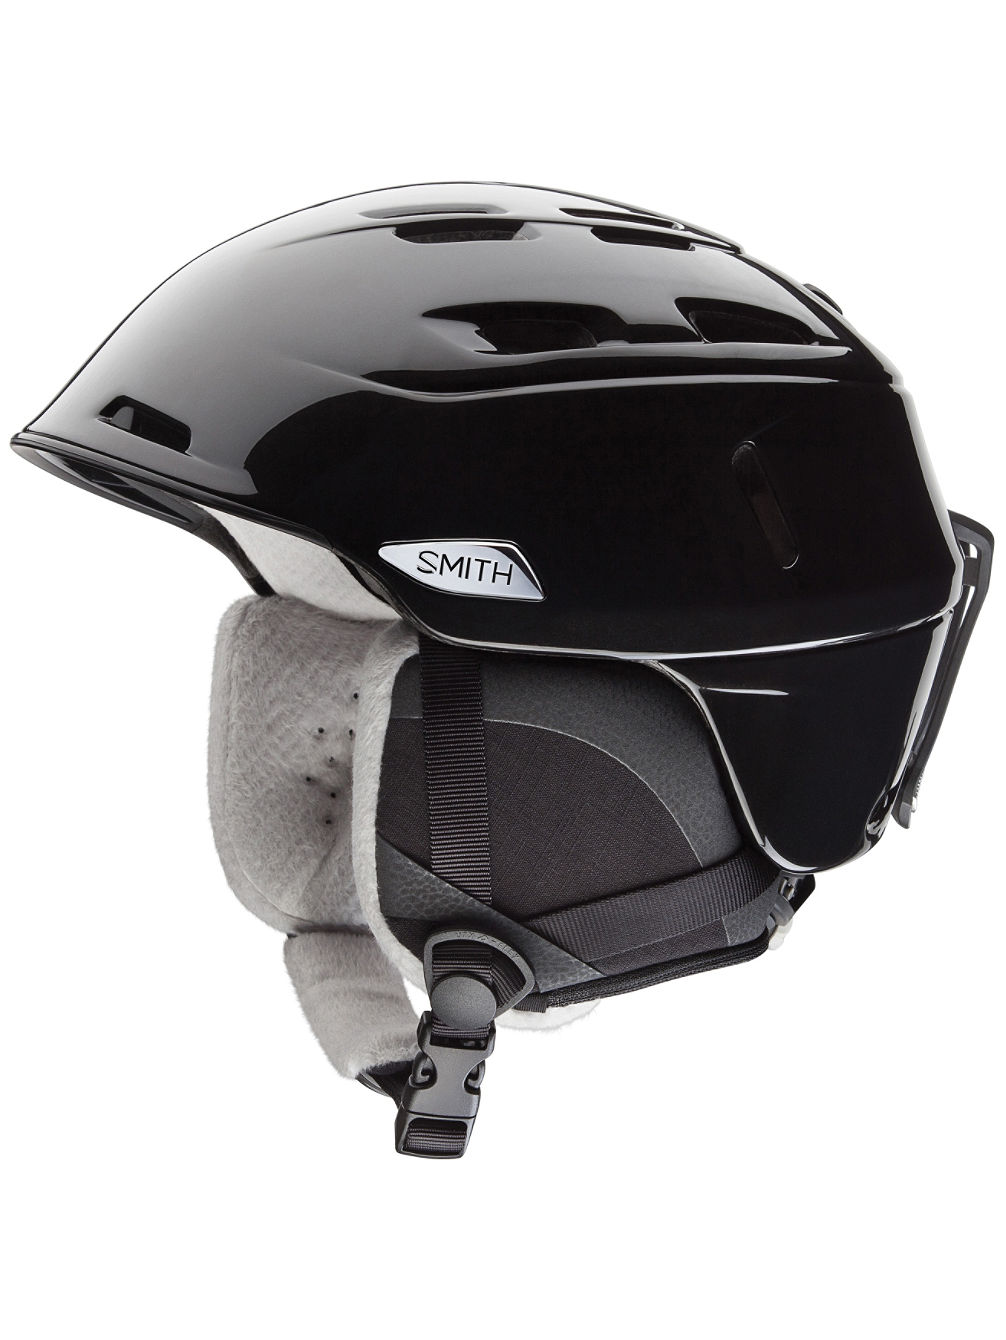 smith-compass-helmet